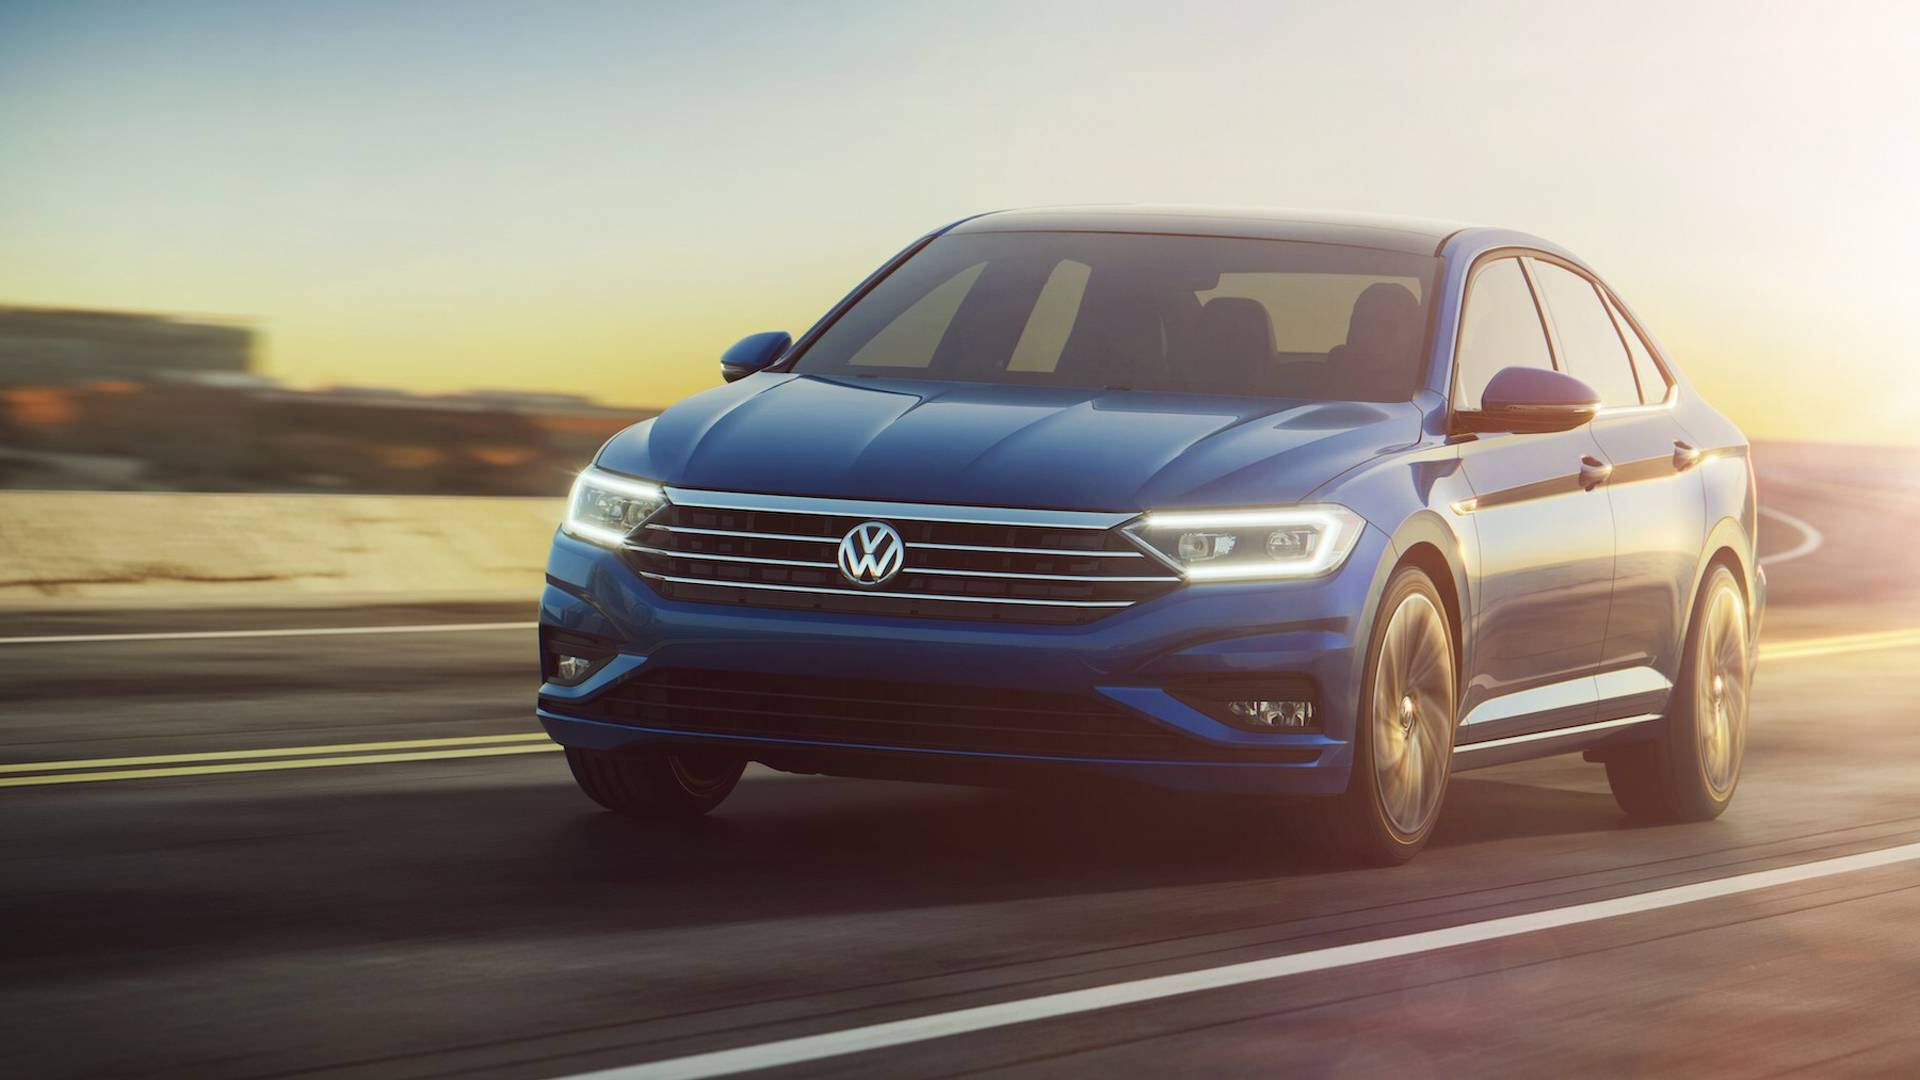 2019 volkswagen jetta shines bright in detroit priced at 18 545 autoevolution. Black Bedroom Furniture Sets. Home Design Ideas